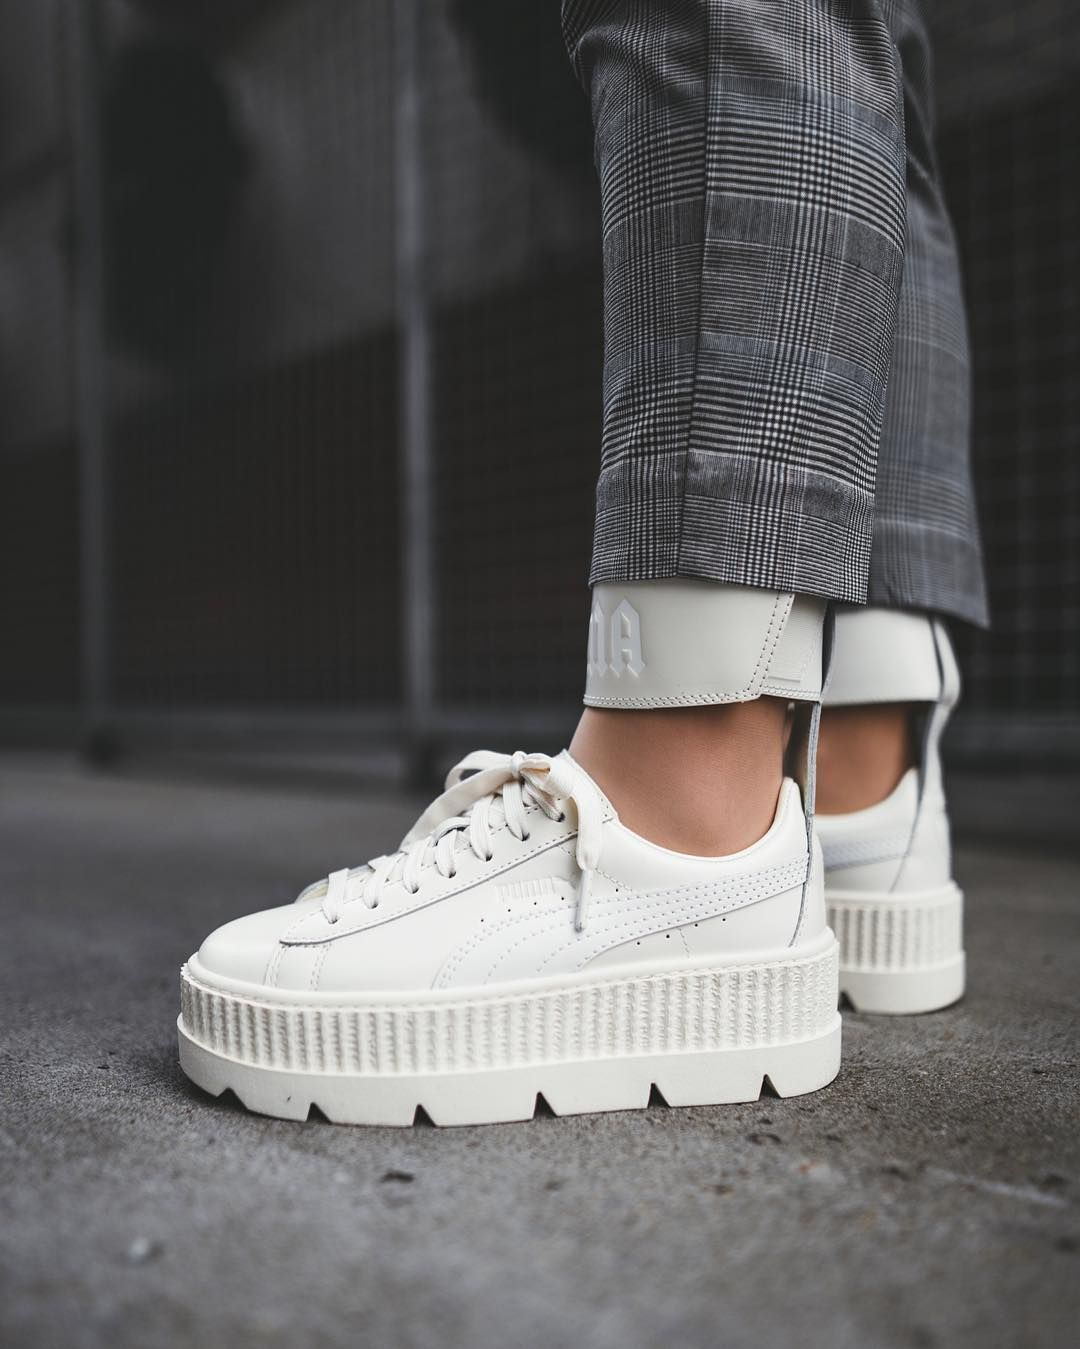 best loved 8576c dc3d7 Rihanna x Puma Fenty Ankle Strap Creeper